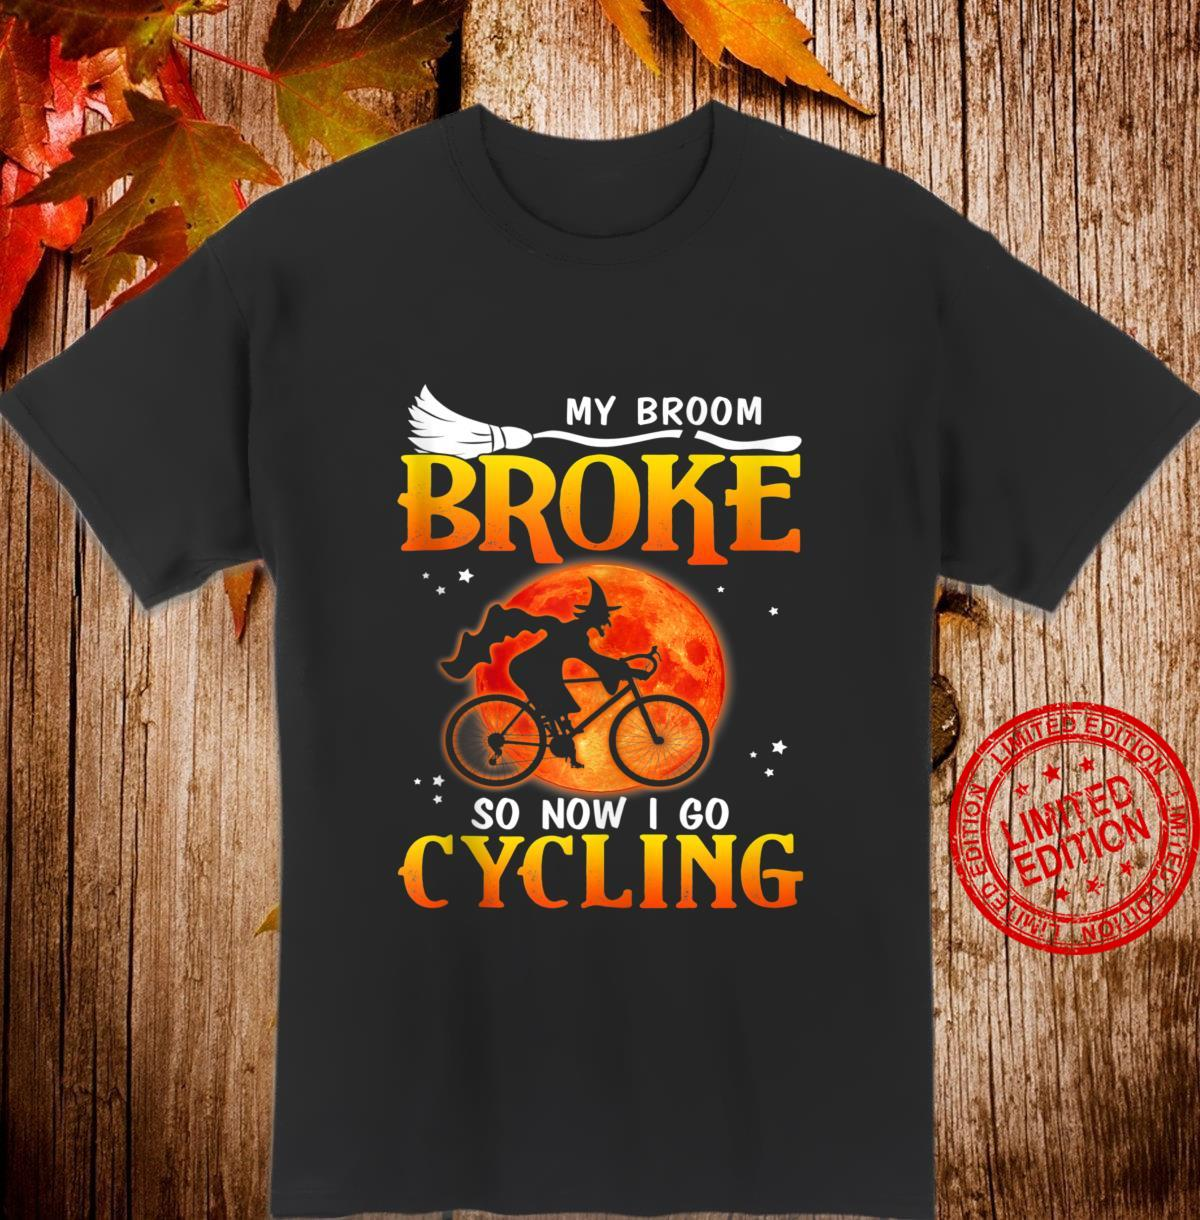 My broom broke so now I go CyclingGift Ideas in Halloween Shirt